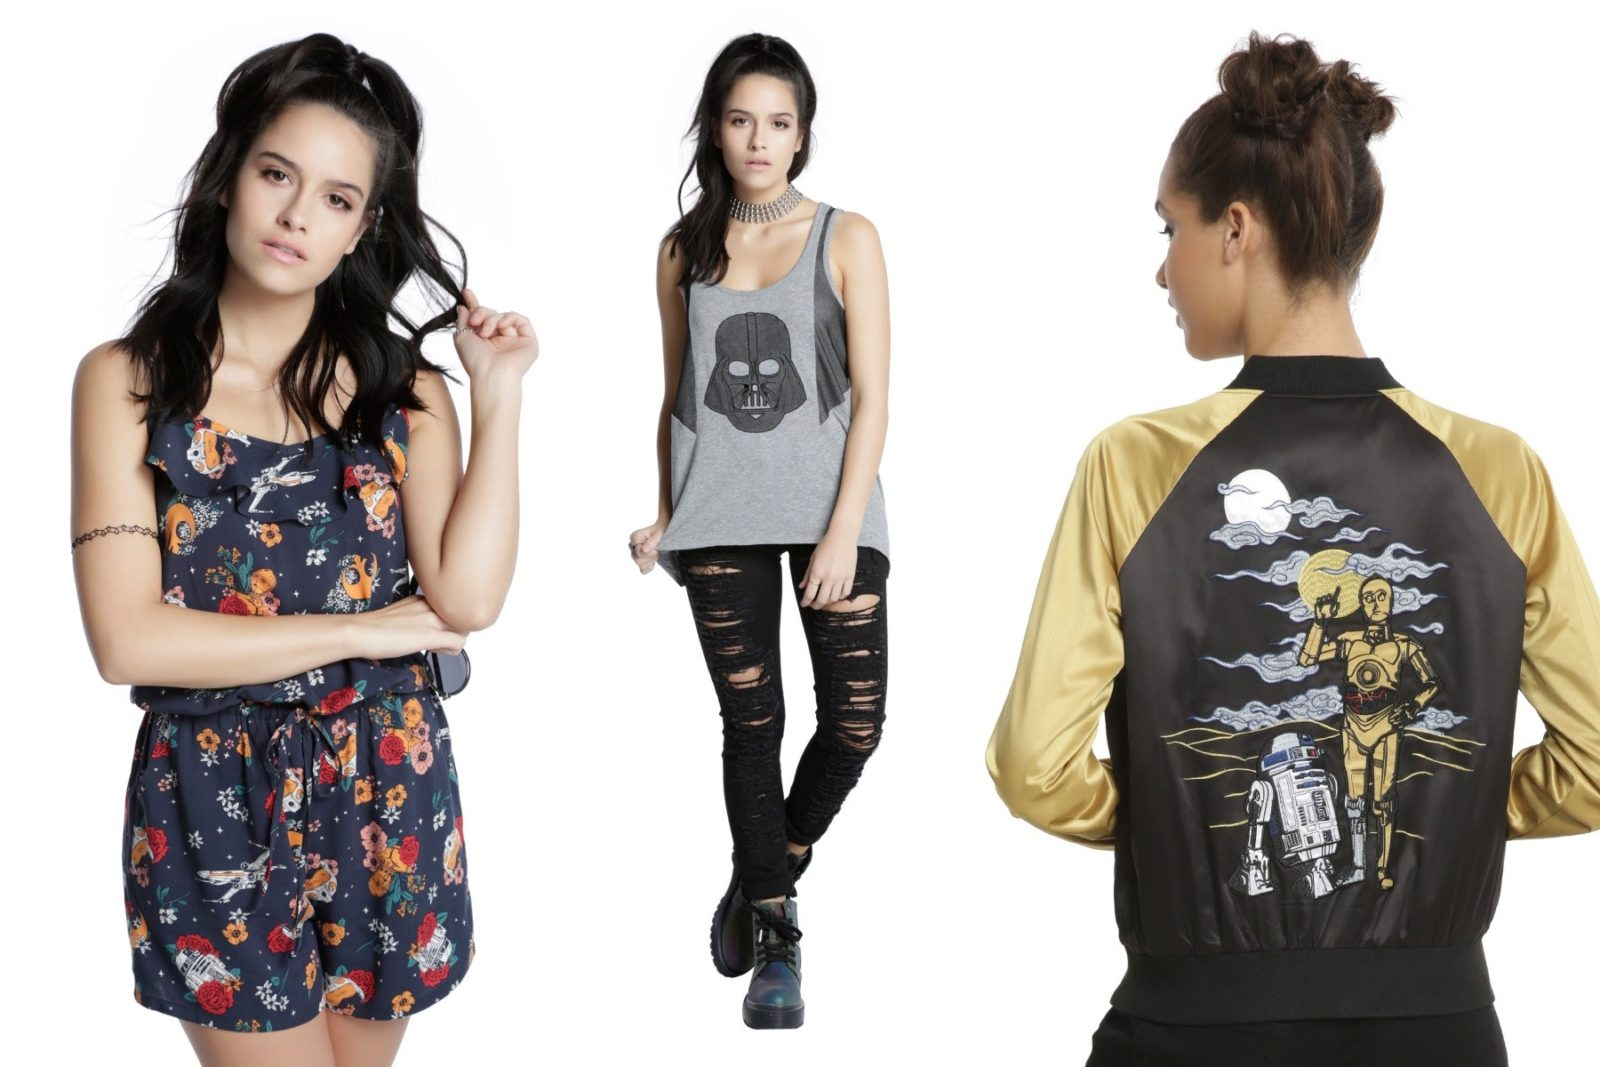 New Her Universe fashion at Hot Topic